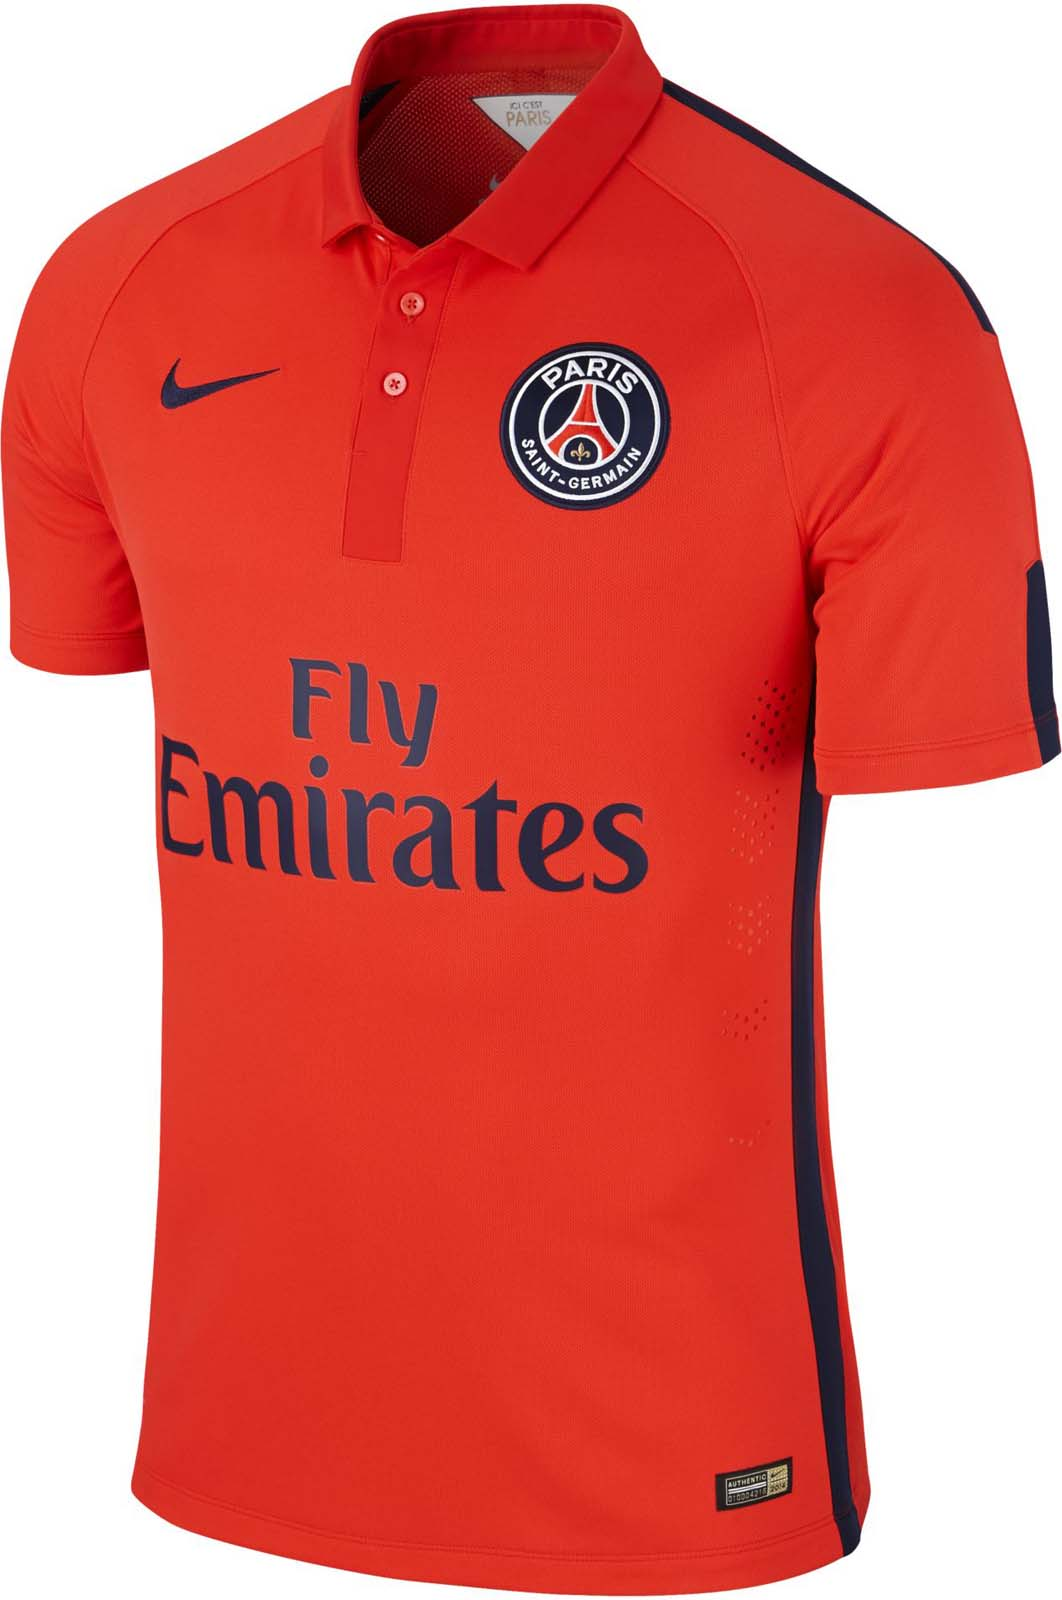 ... 15 third kit this drawing is showing the new psg 2014 2015 third kit